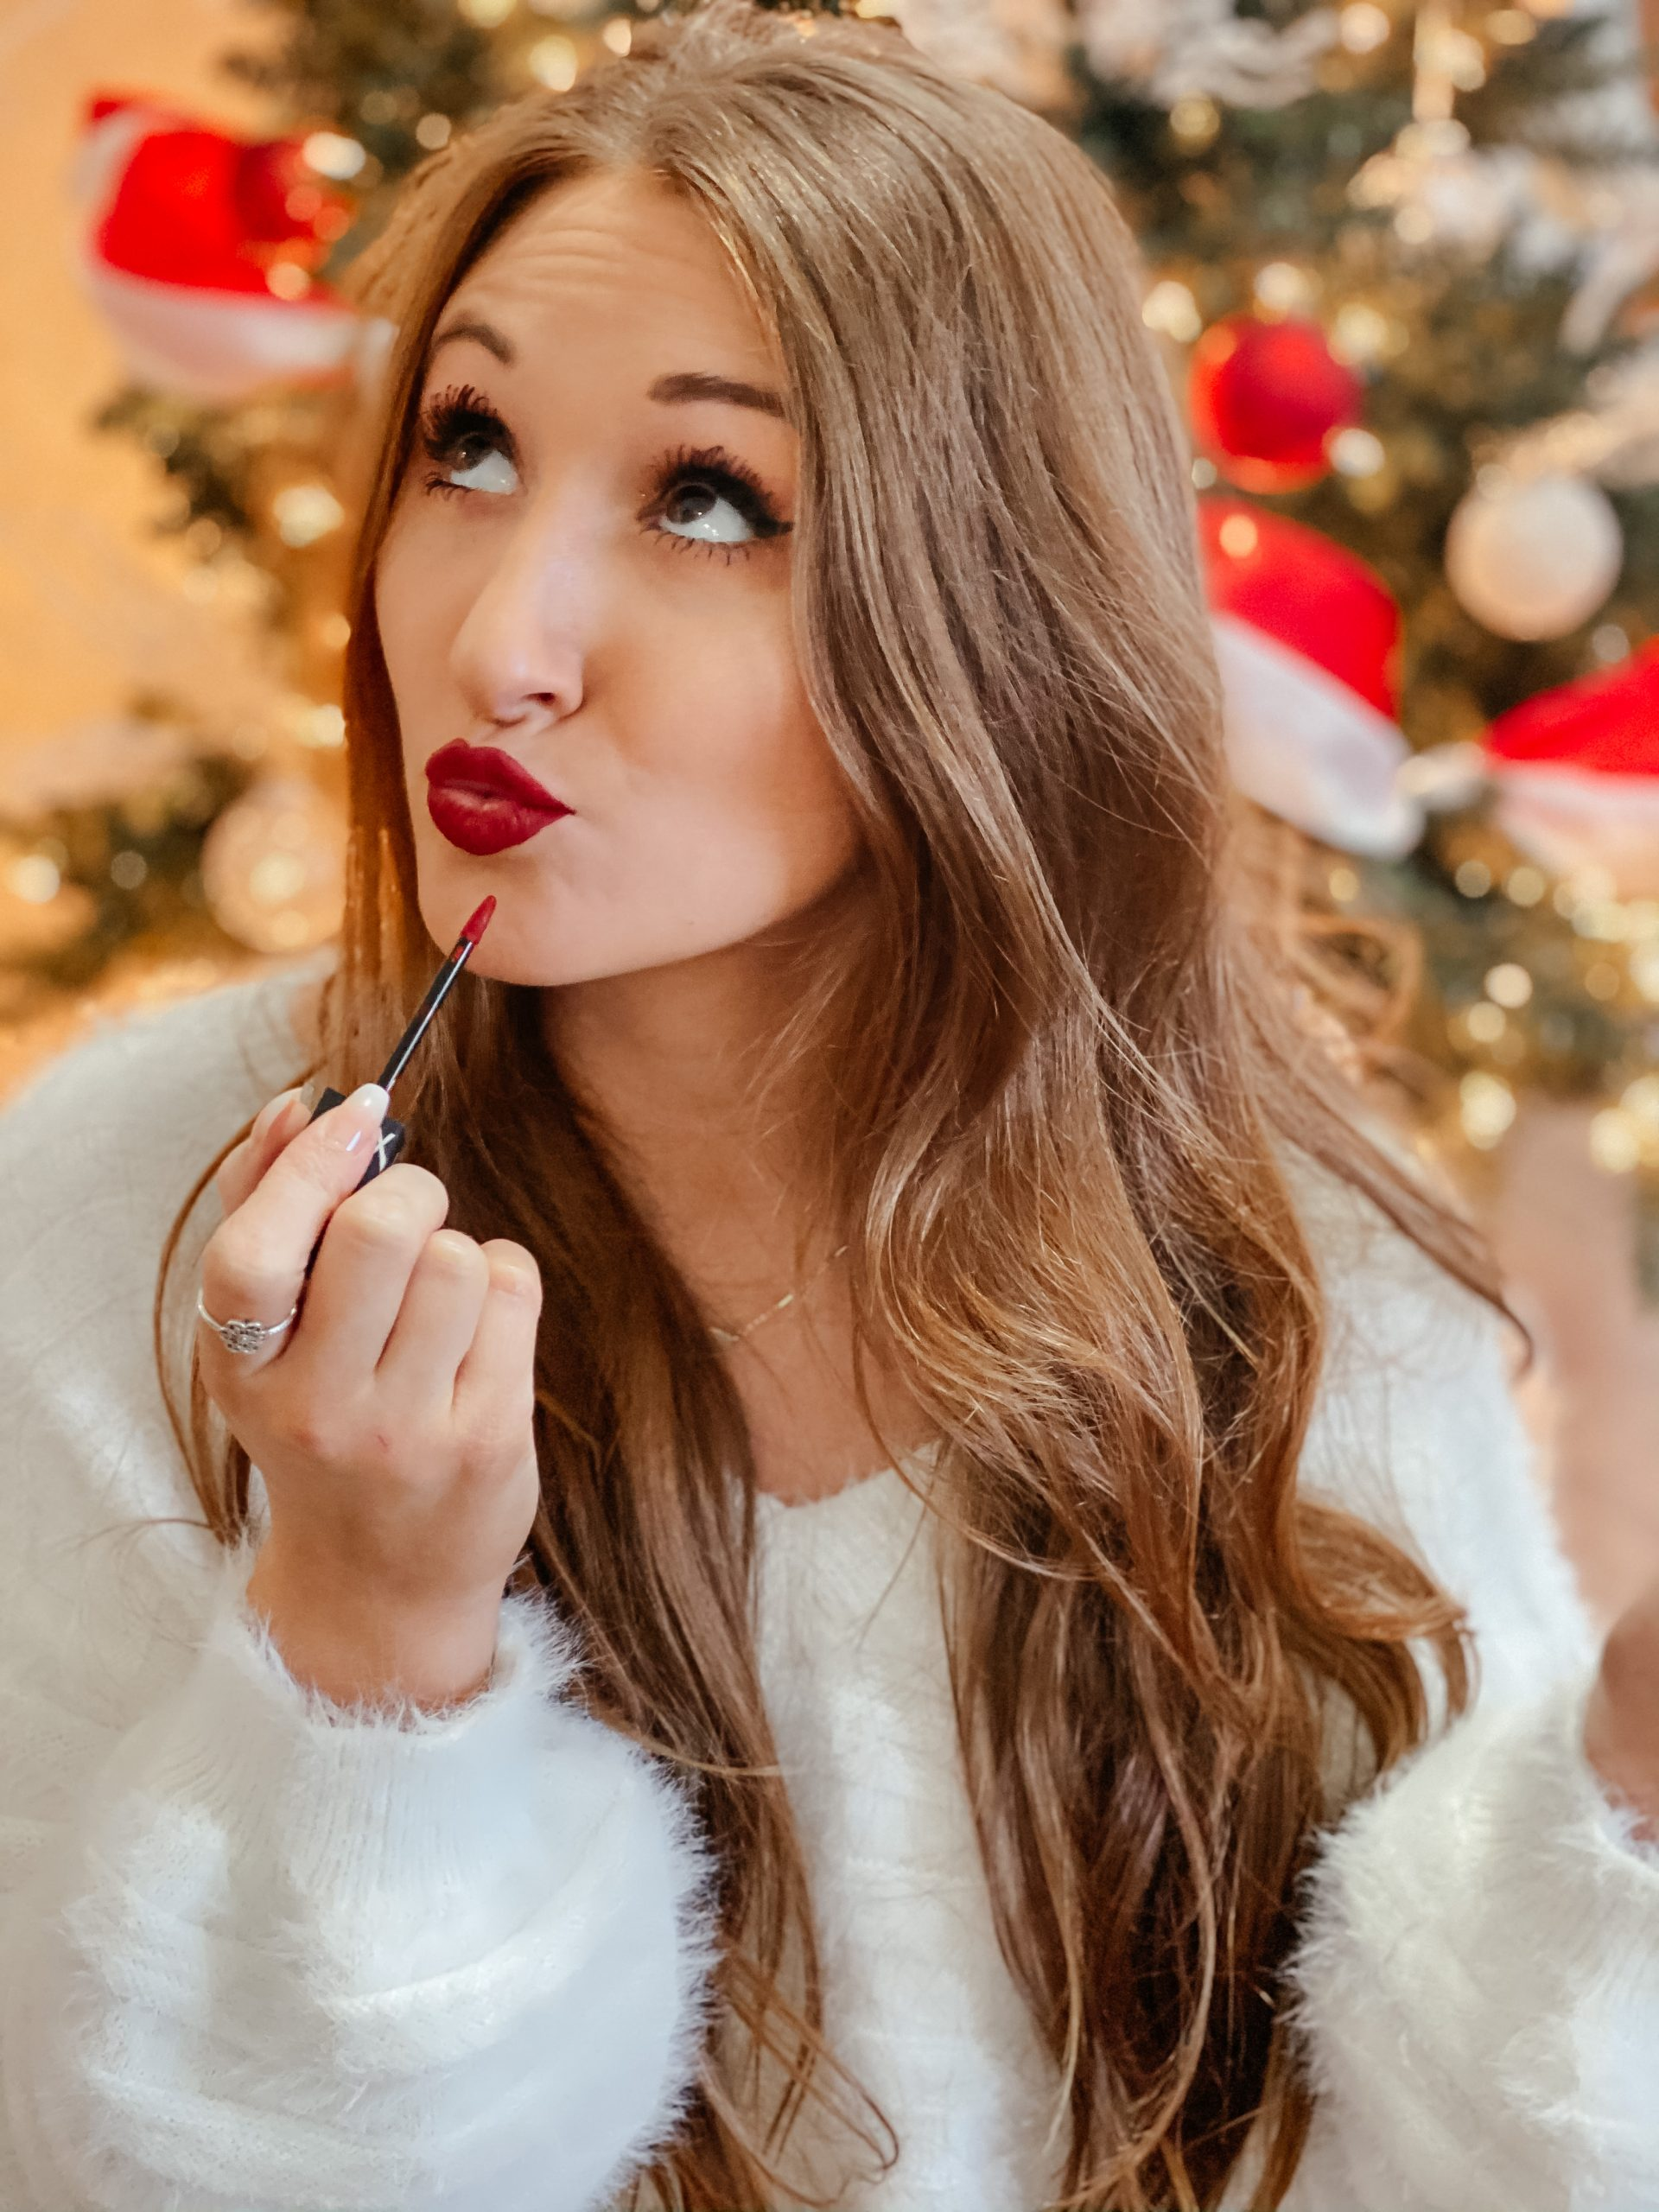 White eyelash sweater with red lipstick and black Spanx faux leather leggings in front of a Christmas tree